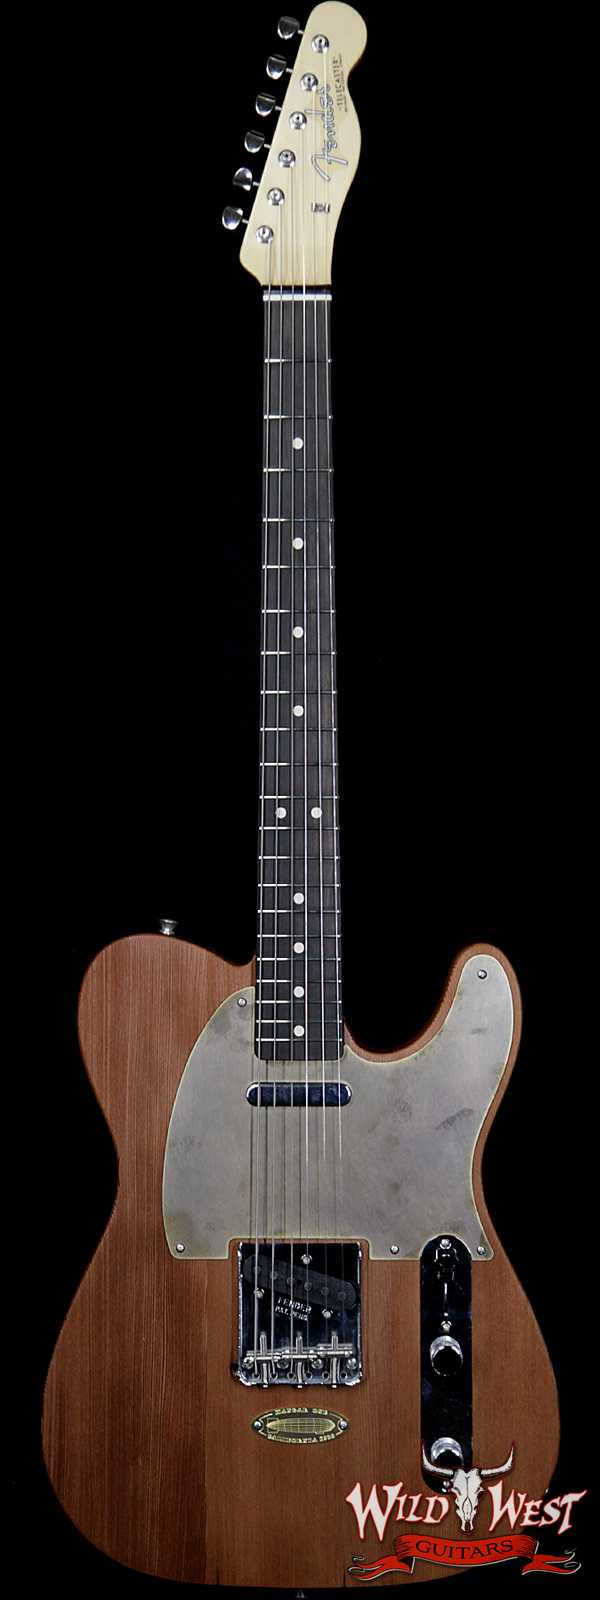 Fender Custom Shop Yuriy Shishkov Masterbuilt Airfield Telecaster Closet Classic Reclaimed Redwood from Hangar One Zeppelin Storage